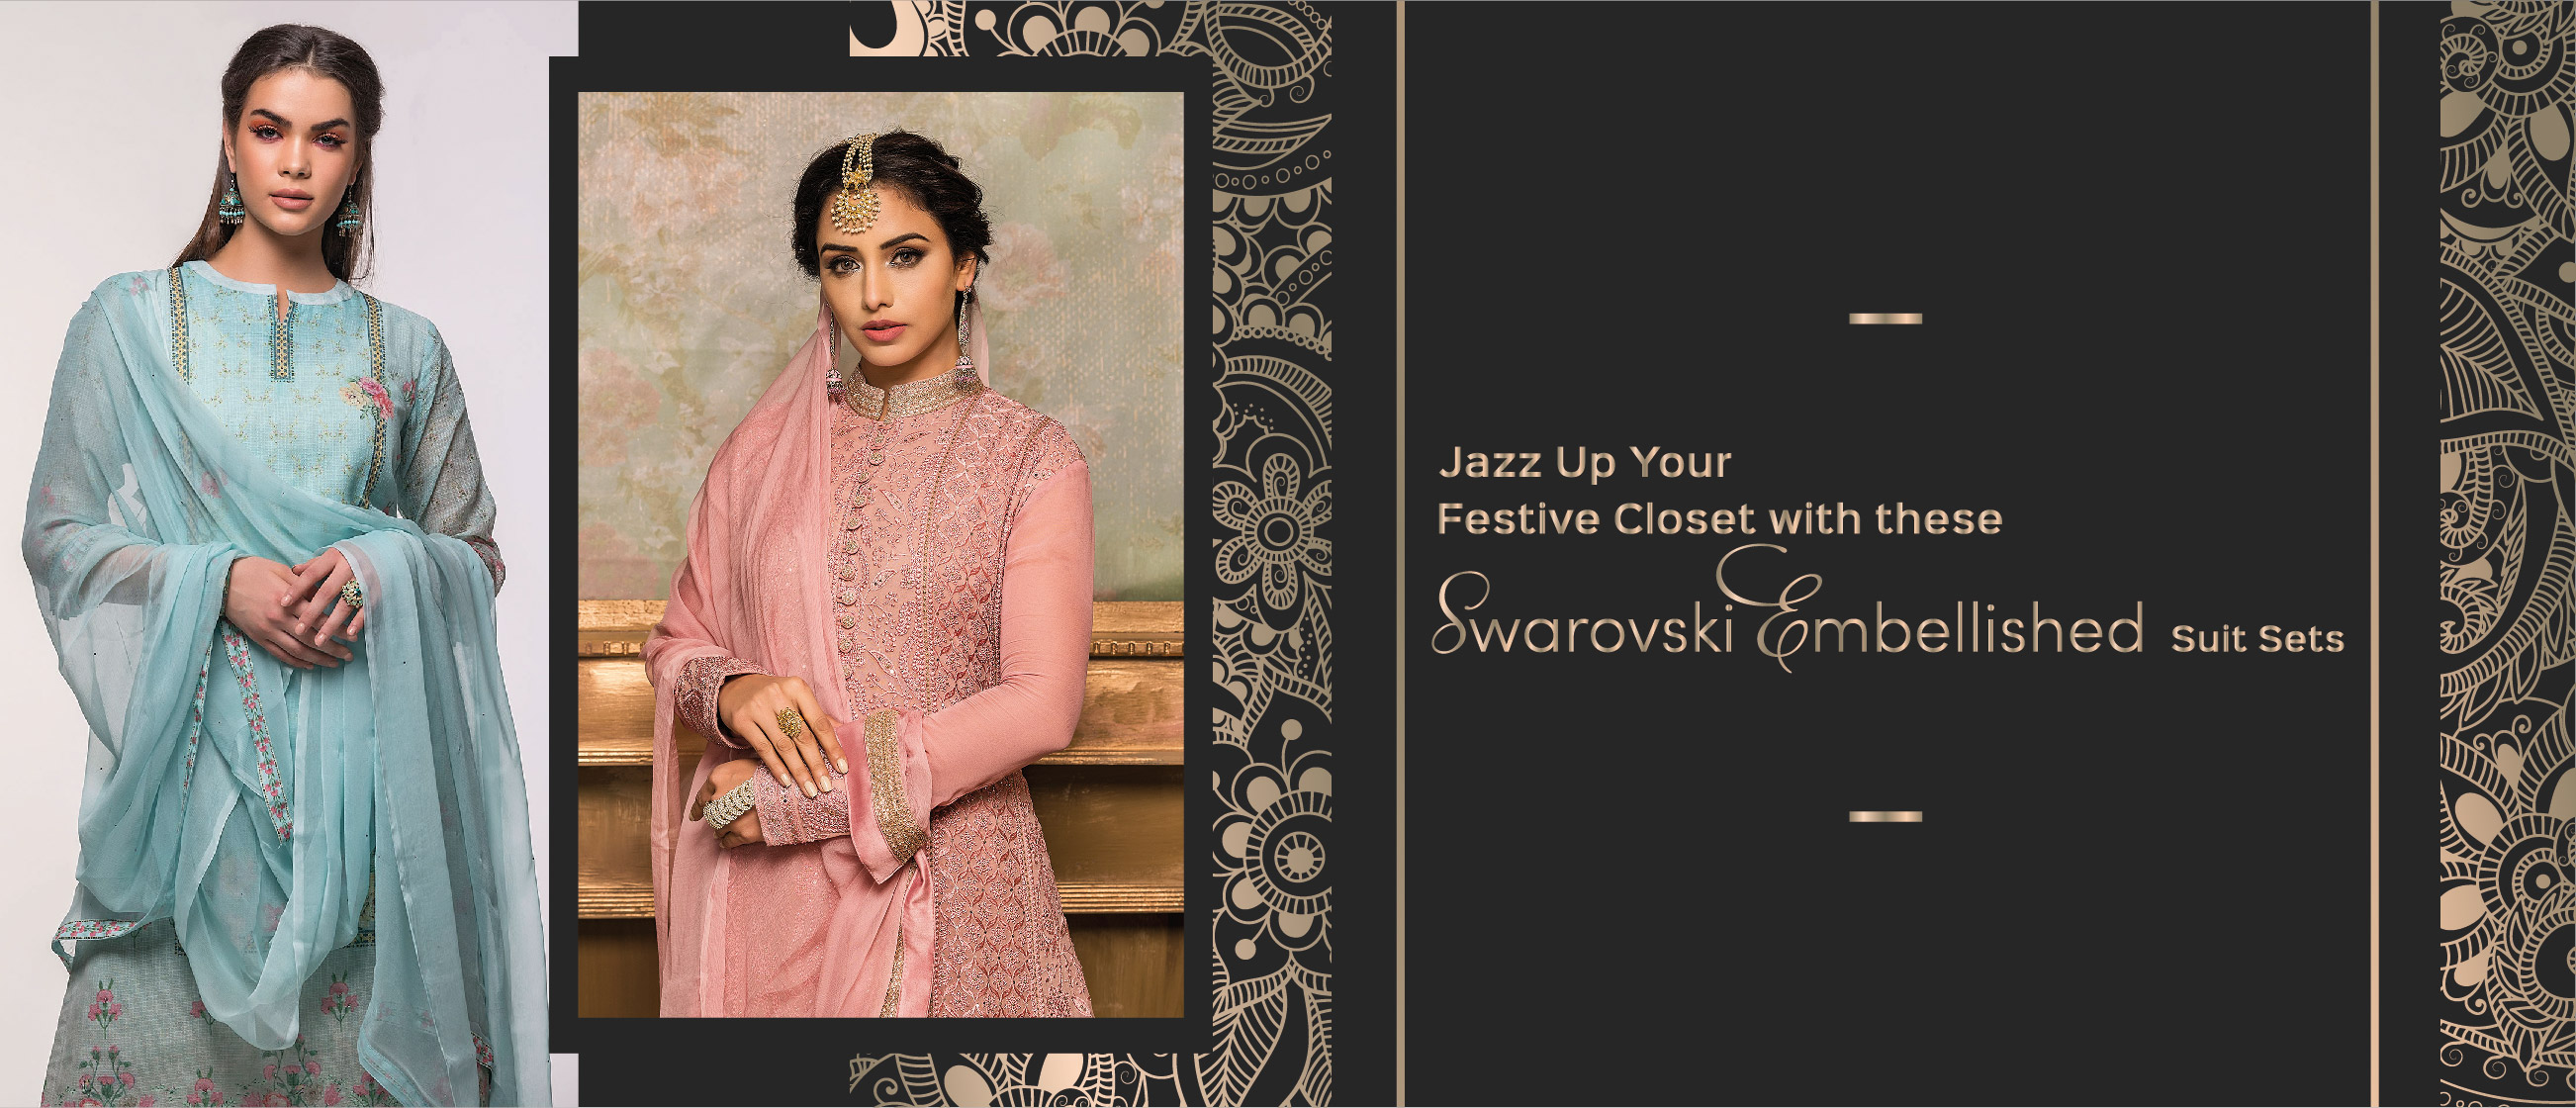 Jazz Up Your Festive Closet with These Swarovski Embellished Suit Sets